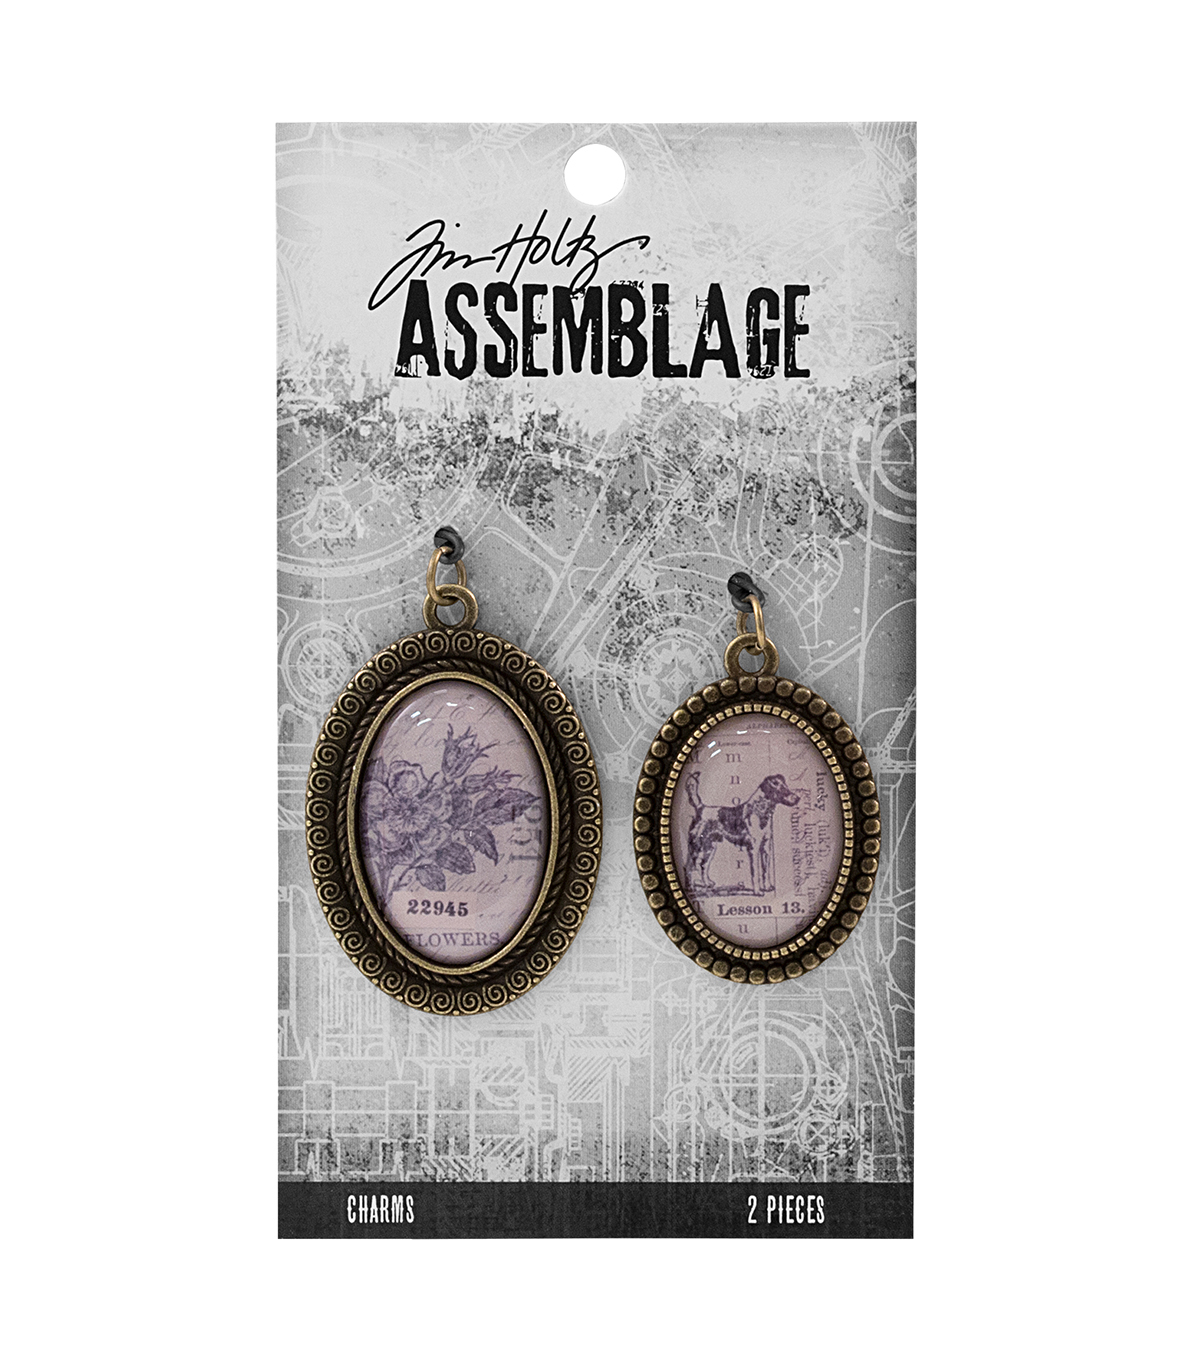 Tim Holtz Assemblage Pack of 2 Brass Bezels Charms